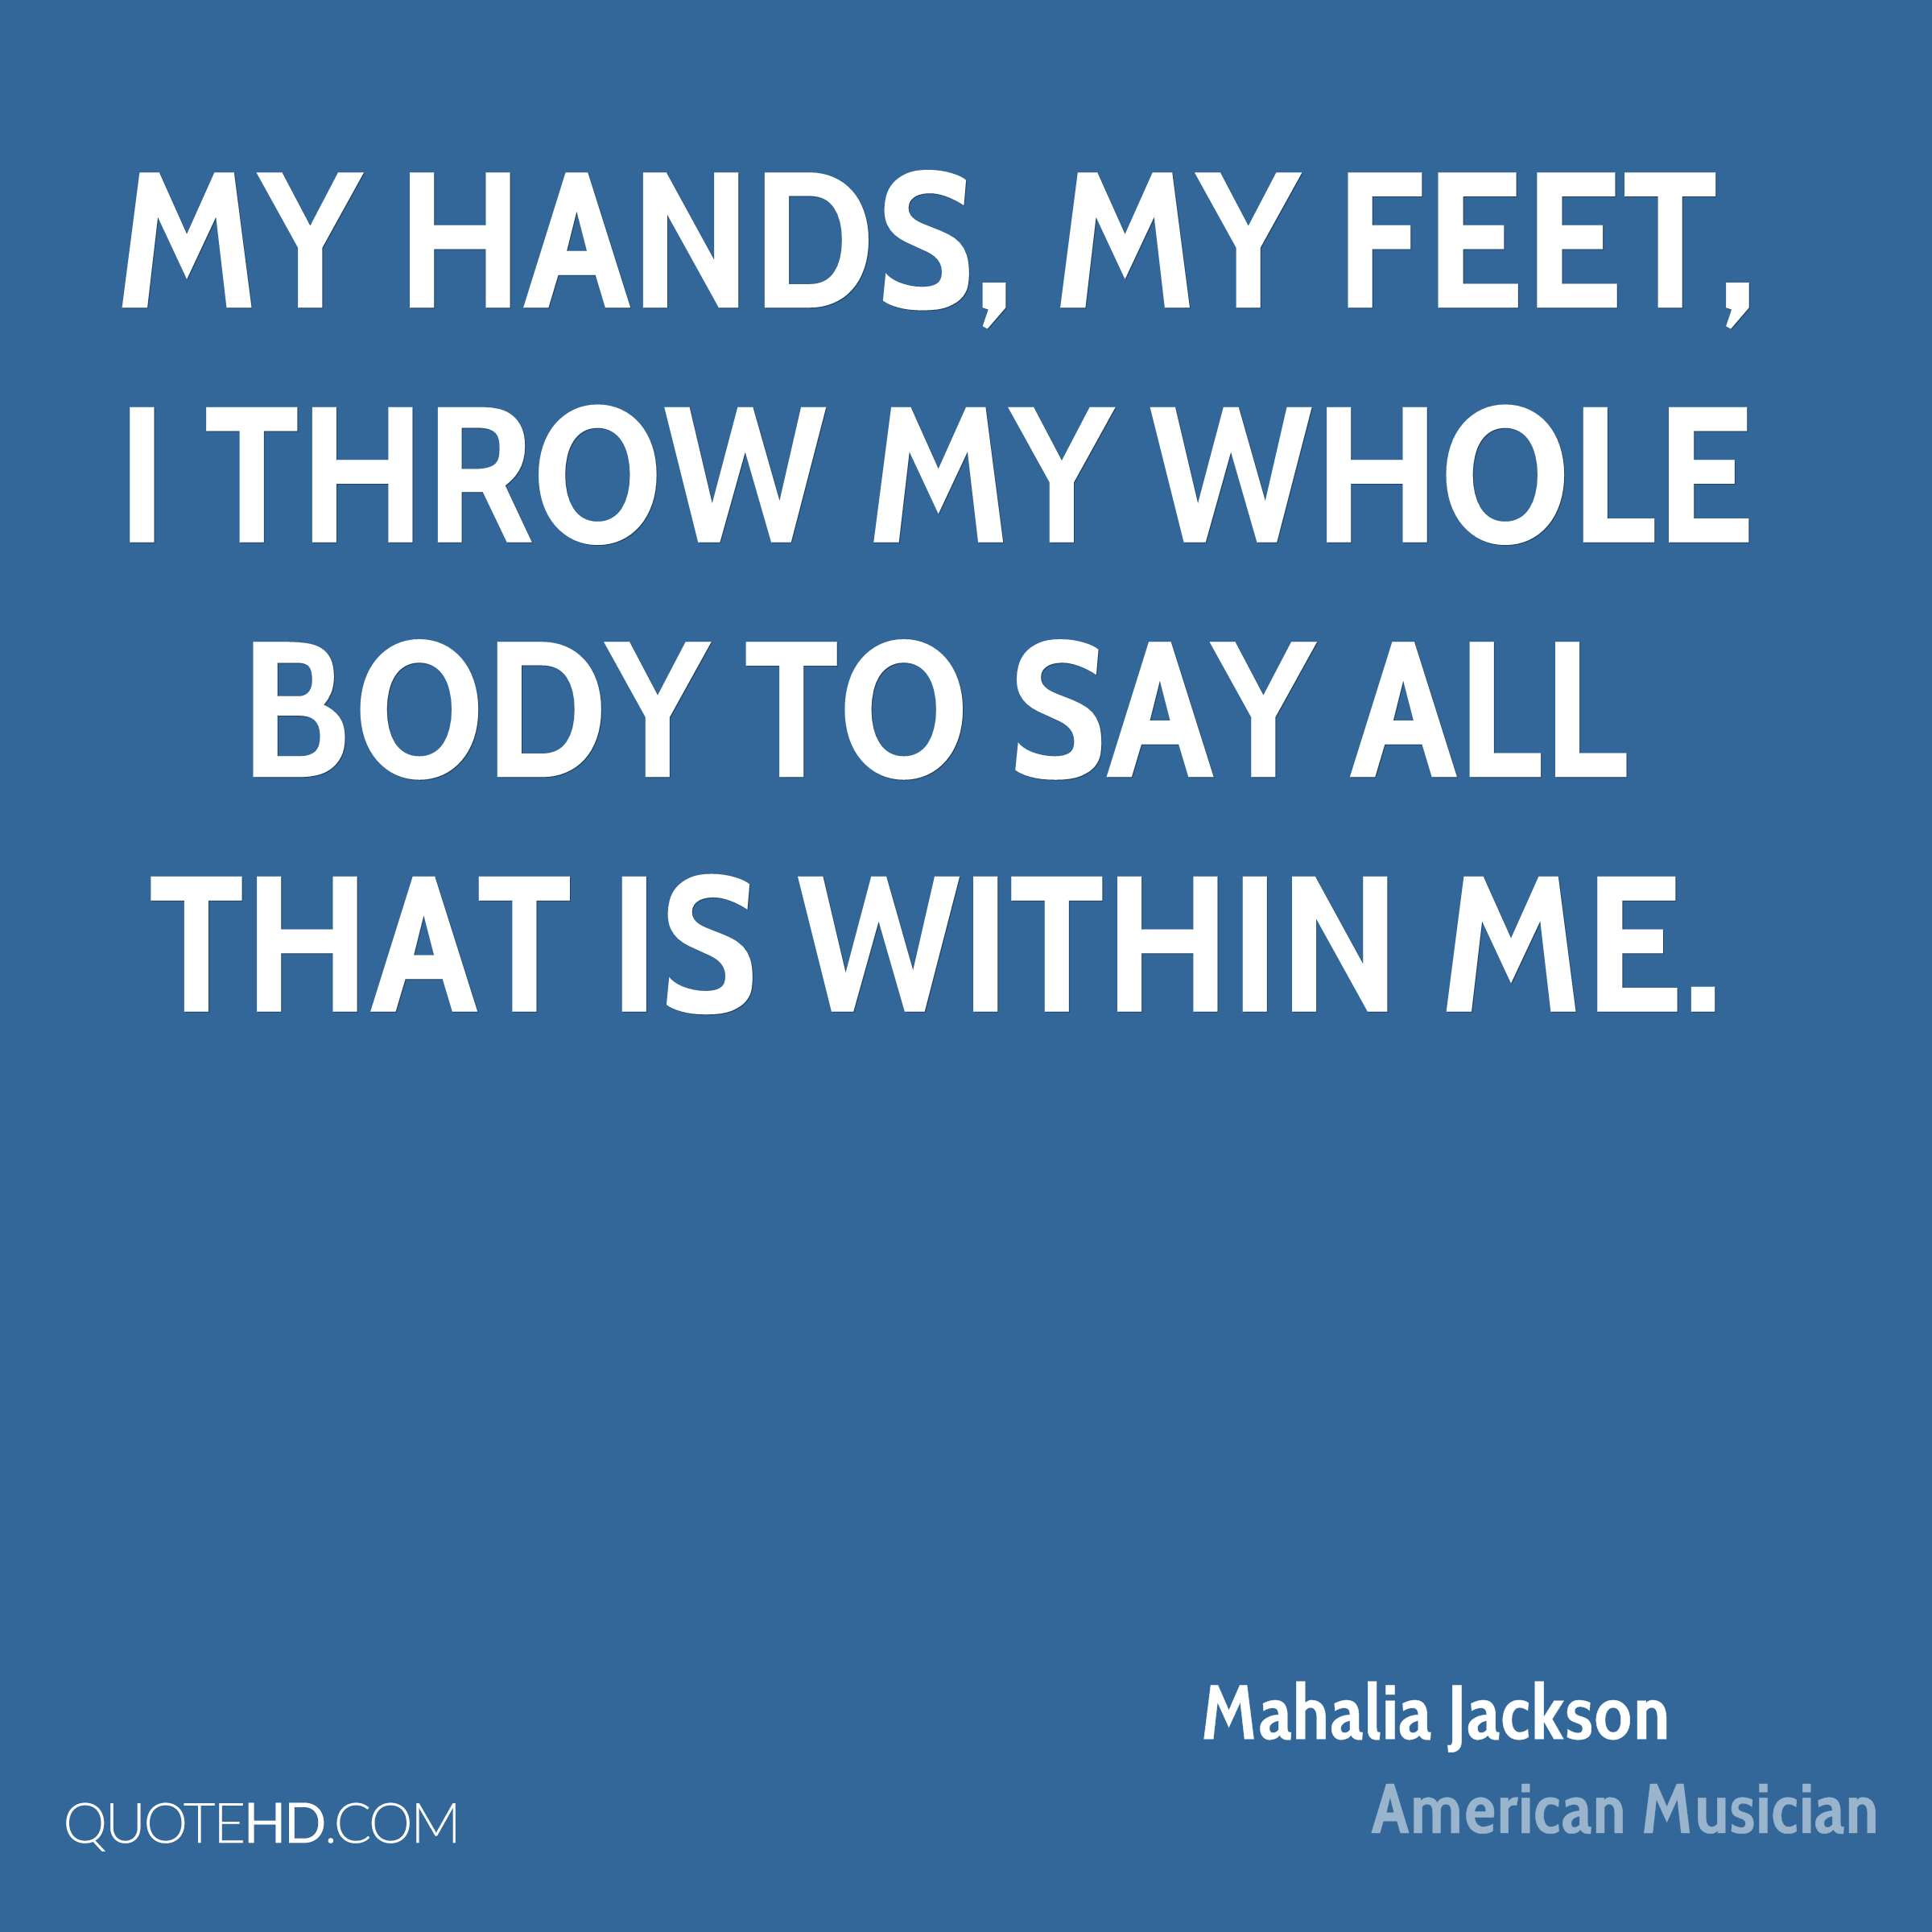 My hands, my feet, I throw my whole body to say all that is within me.